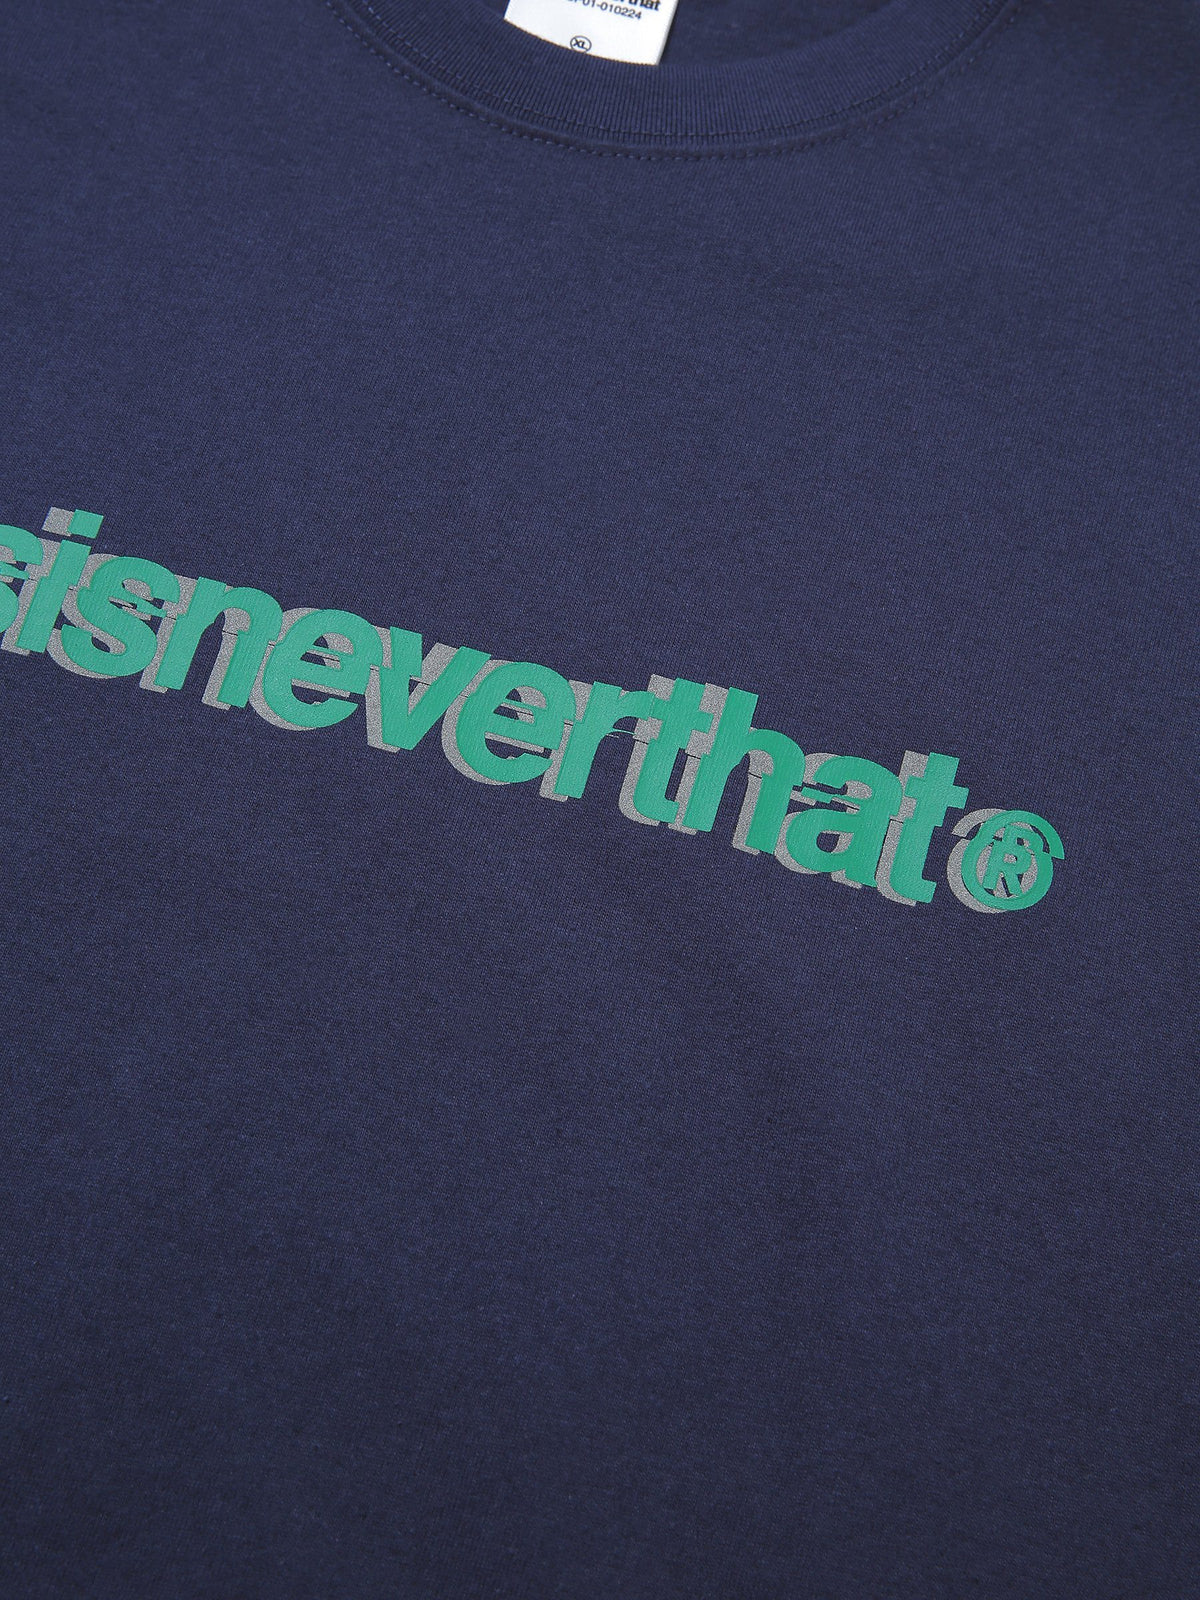 Cracked T-Logo Tee - thisisneverthat